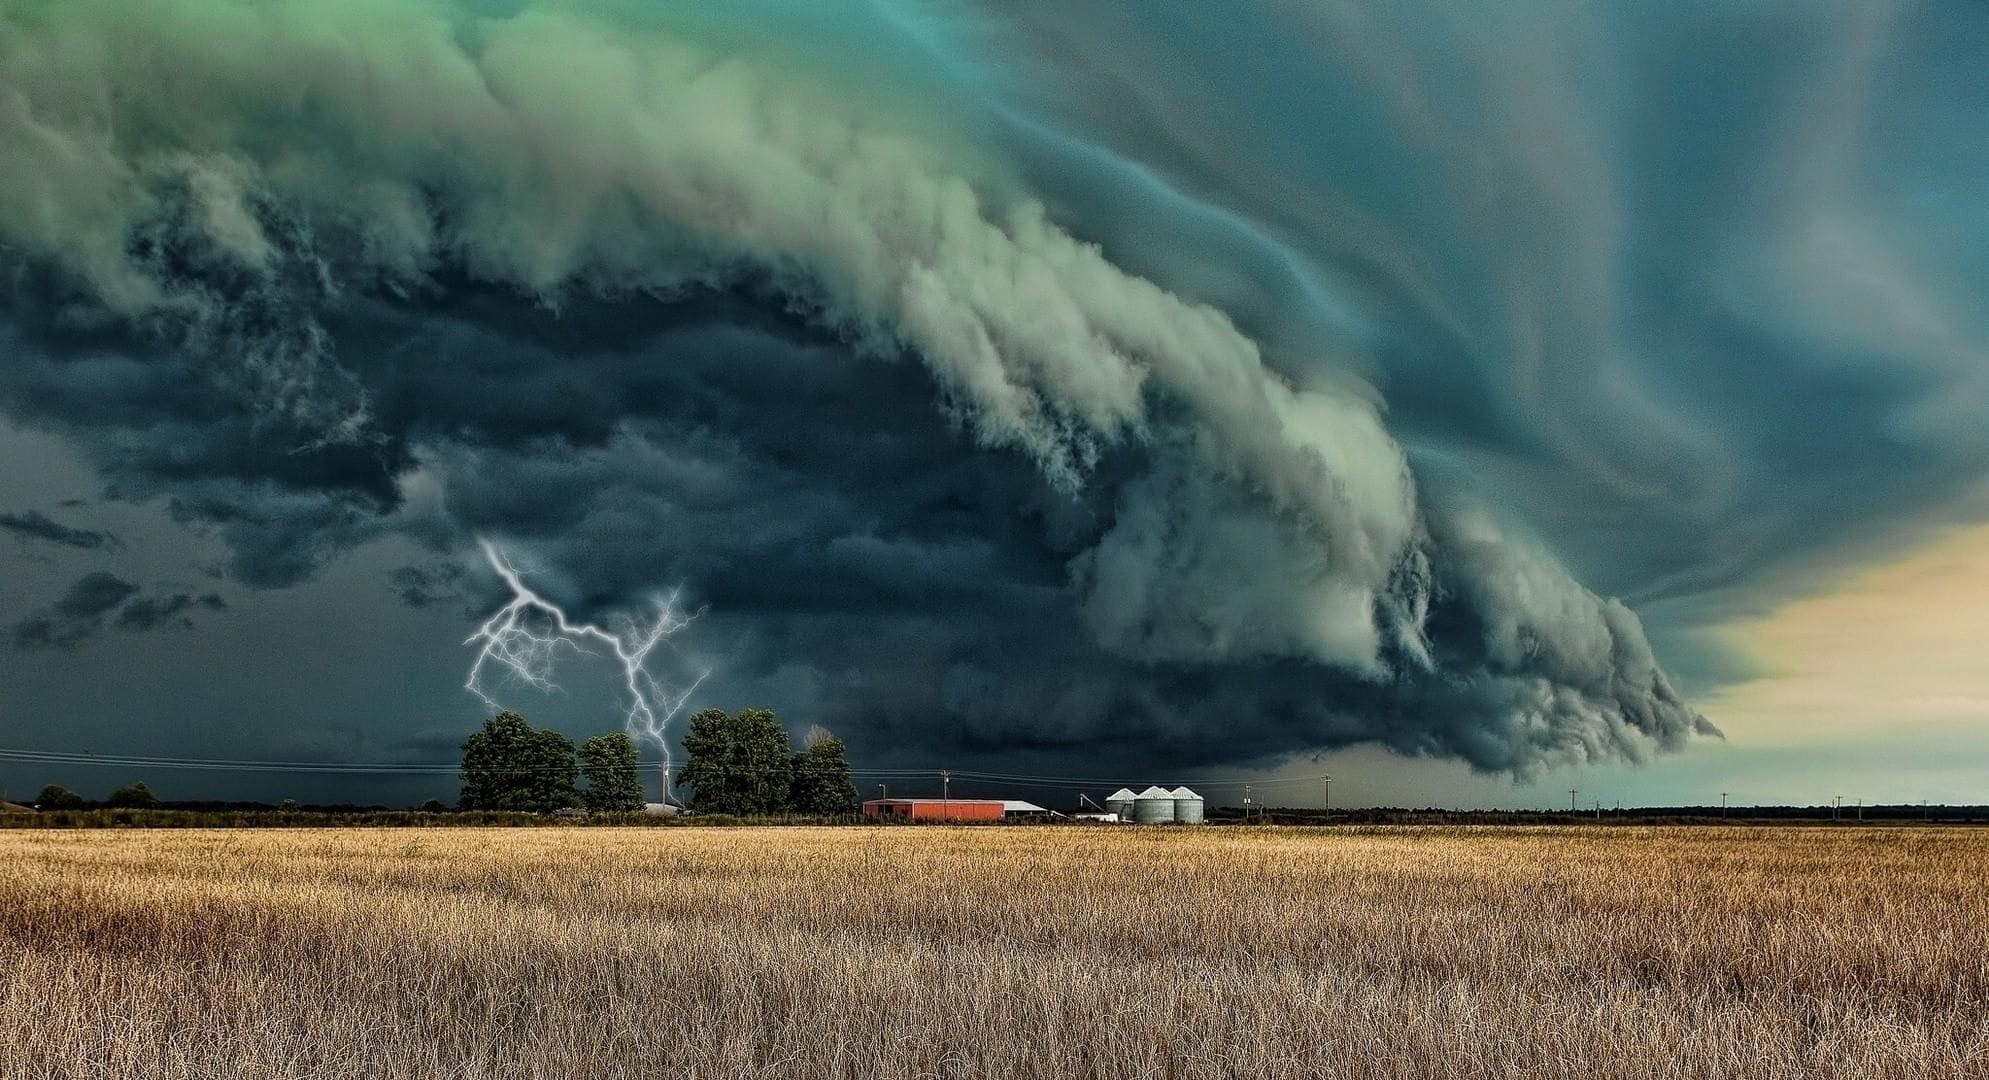 weather dream meaning, dream about weather, weather dream interpretation, seeing in a dream weather